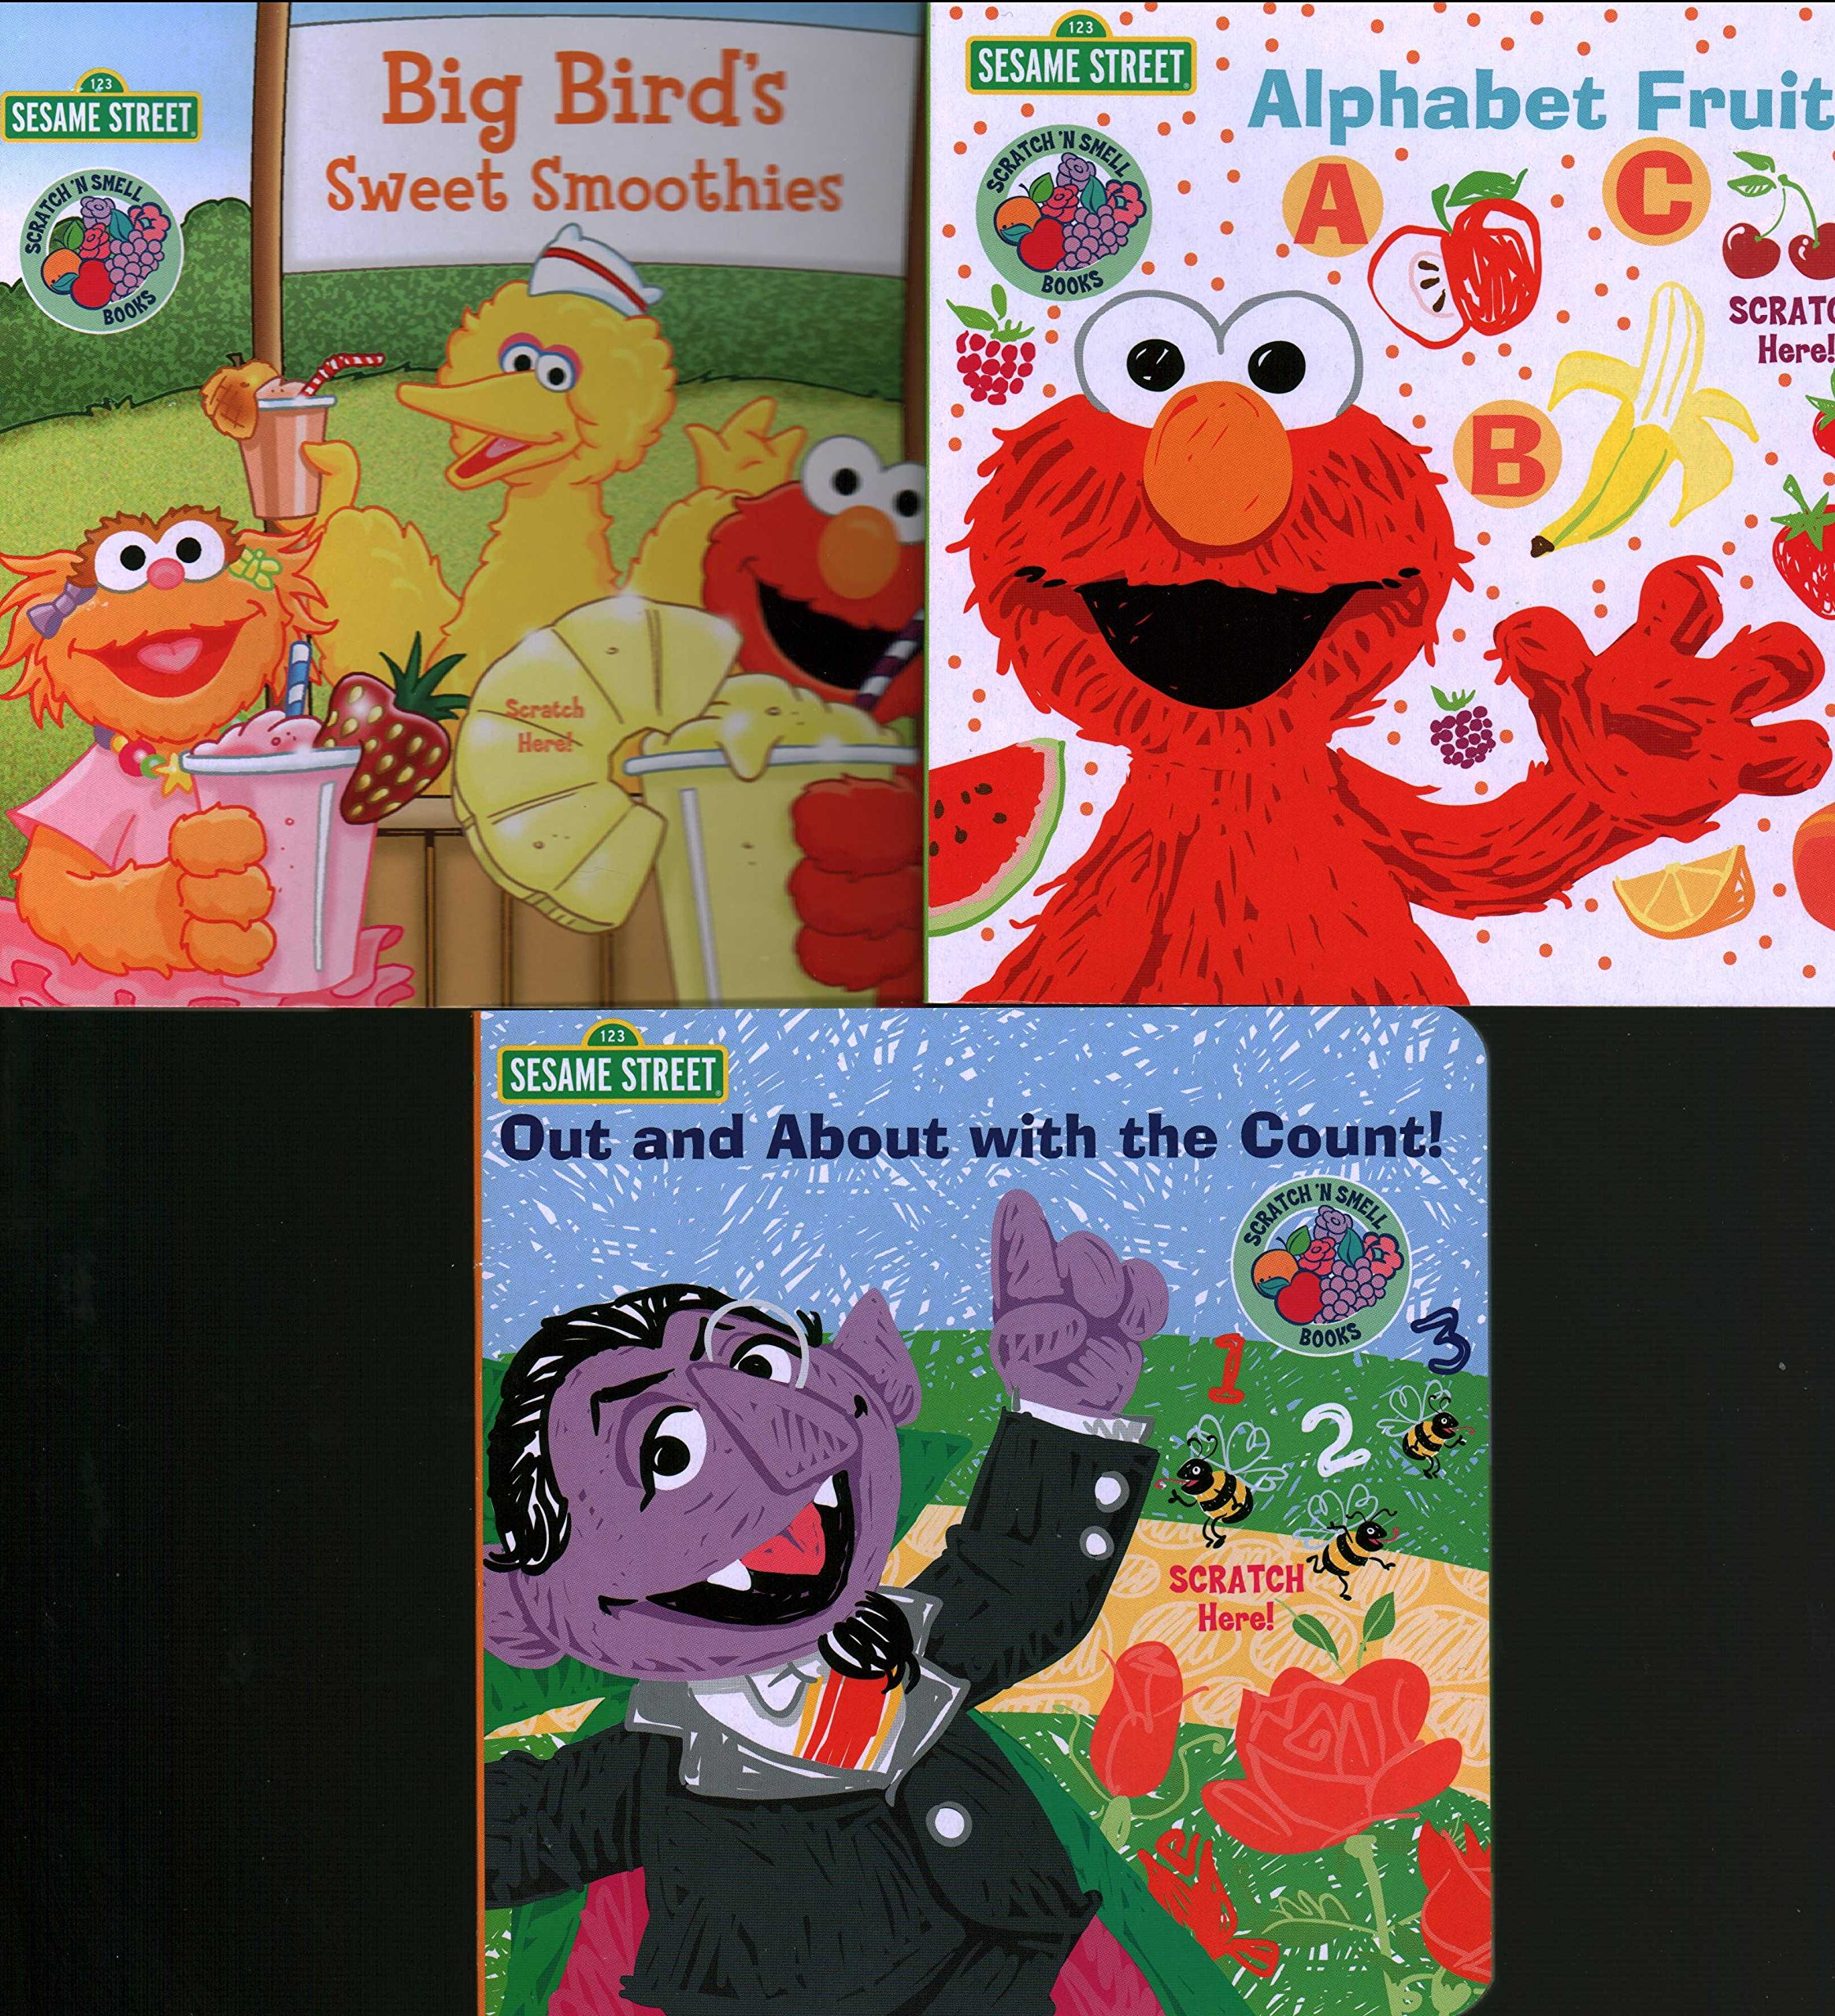 Download Sesame Street Scratch N Smell Board Books, 3-bk Set, Out and About with the Count!, Big Bird's Sweet Smoothies, Alphabet Fruit PDF